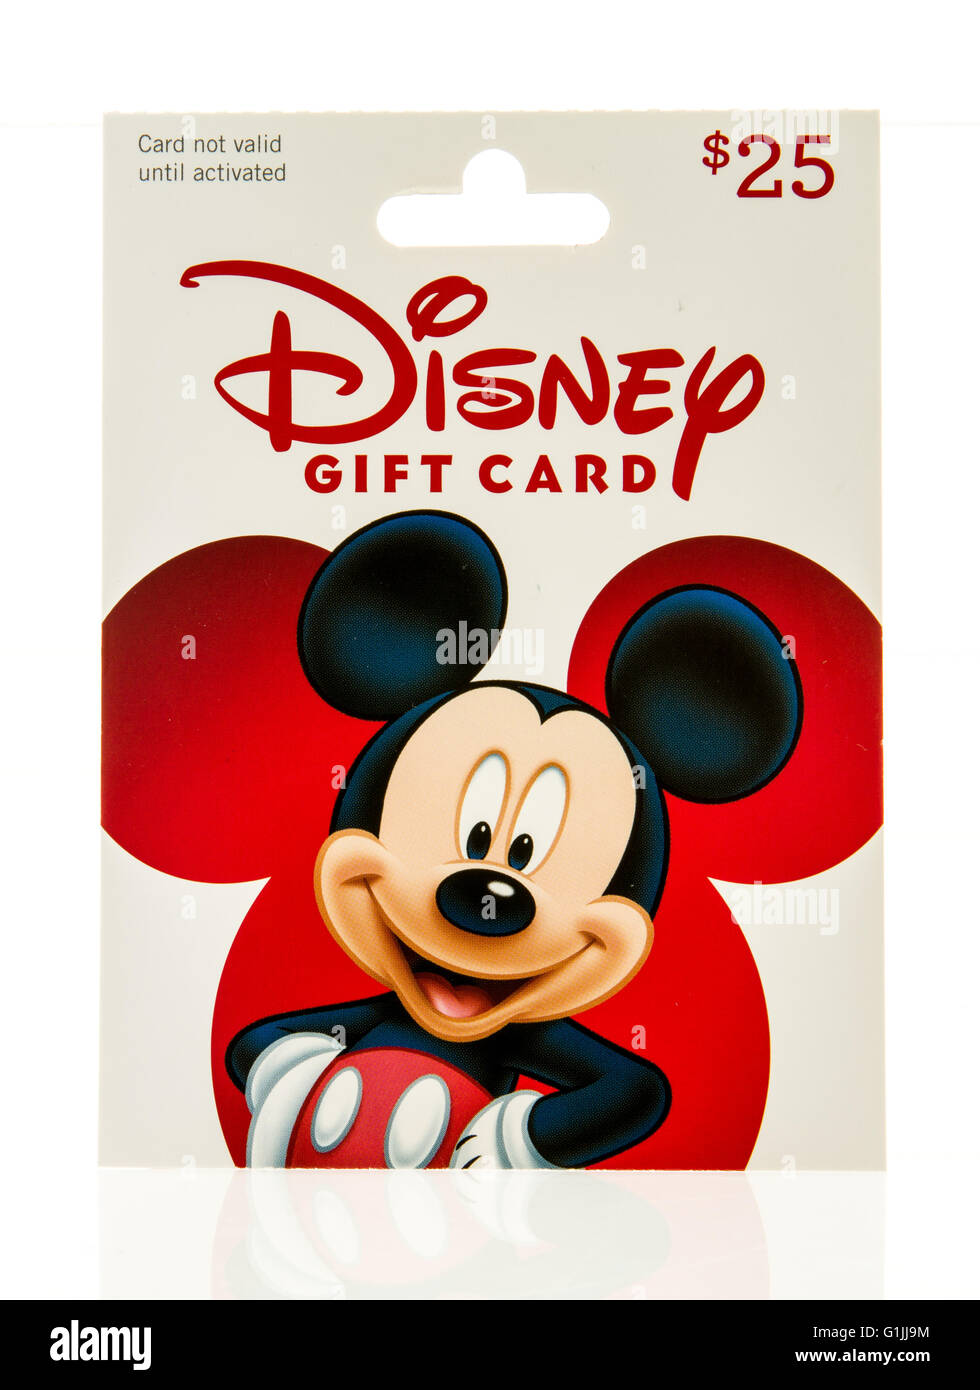 b13c565e22d Winneconne, WI - 15 May 2016: Package of a Disney gift card on an isolated  background